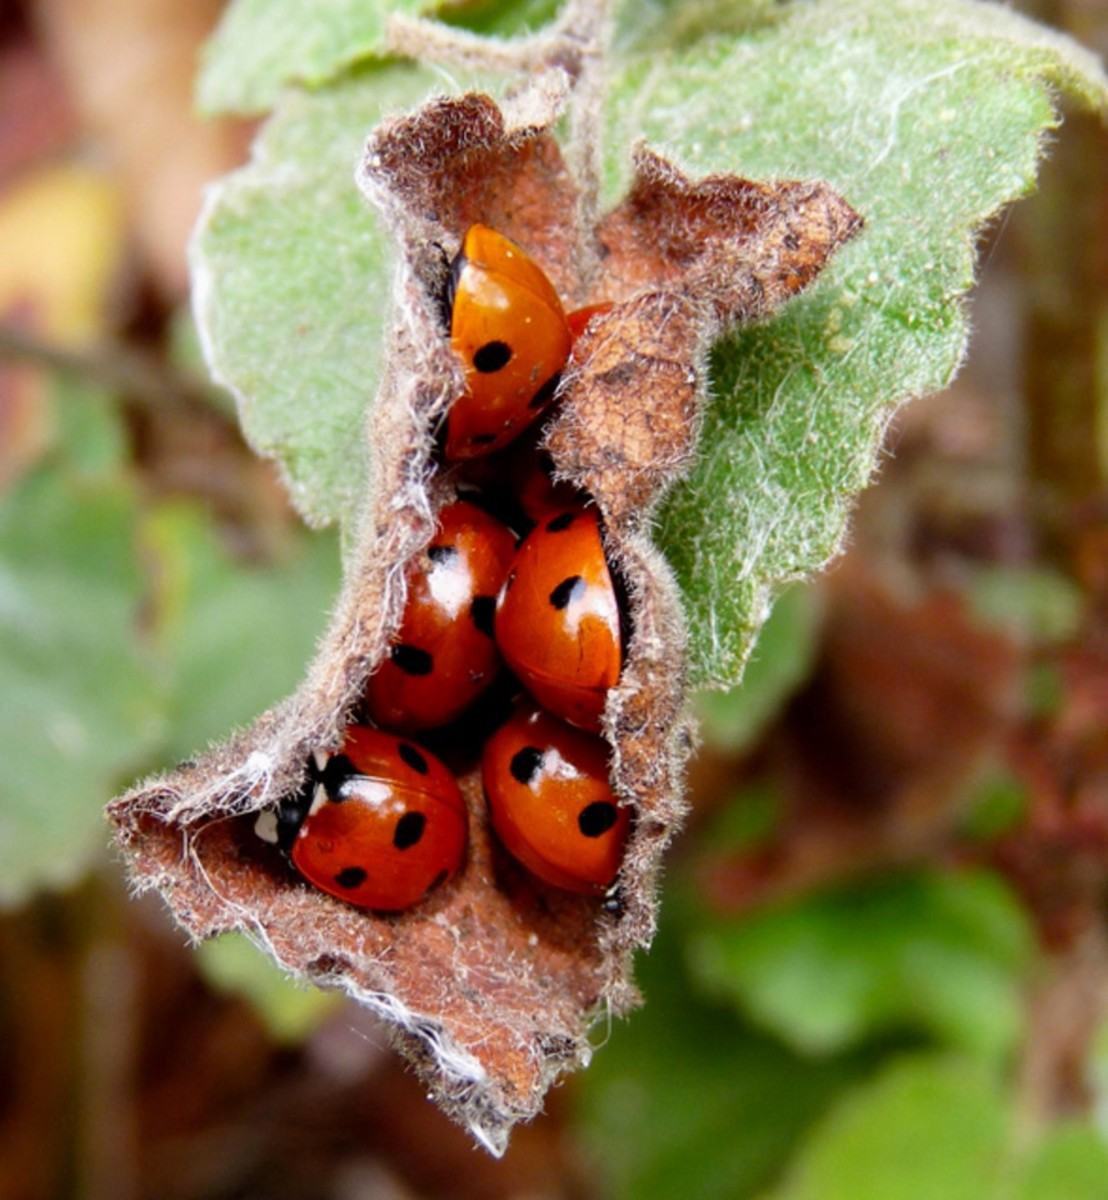 Ladybugs aggregate to help retain heat in winter.